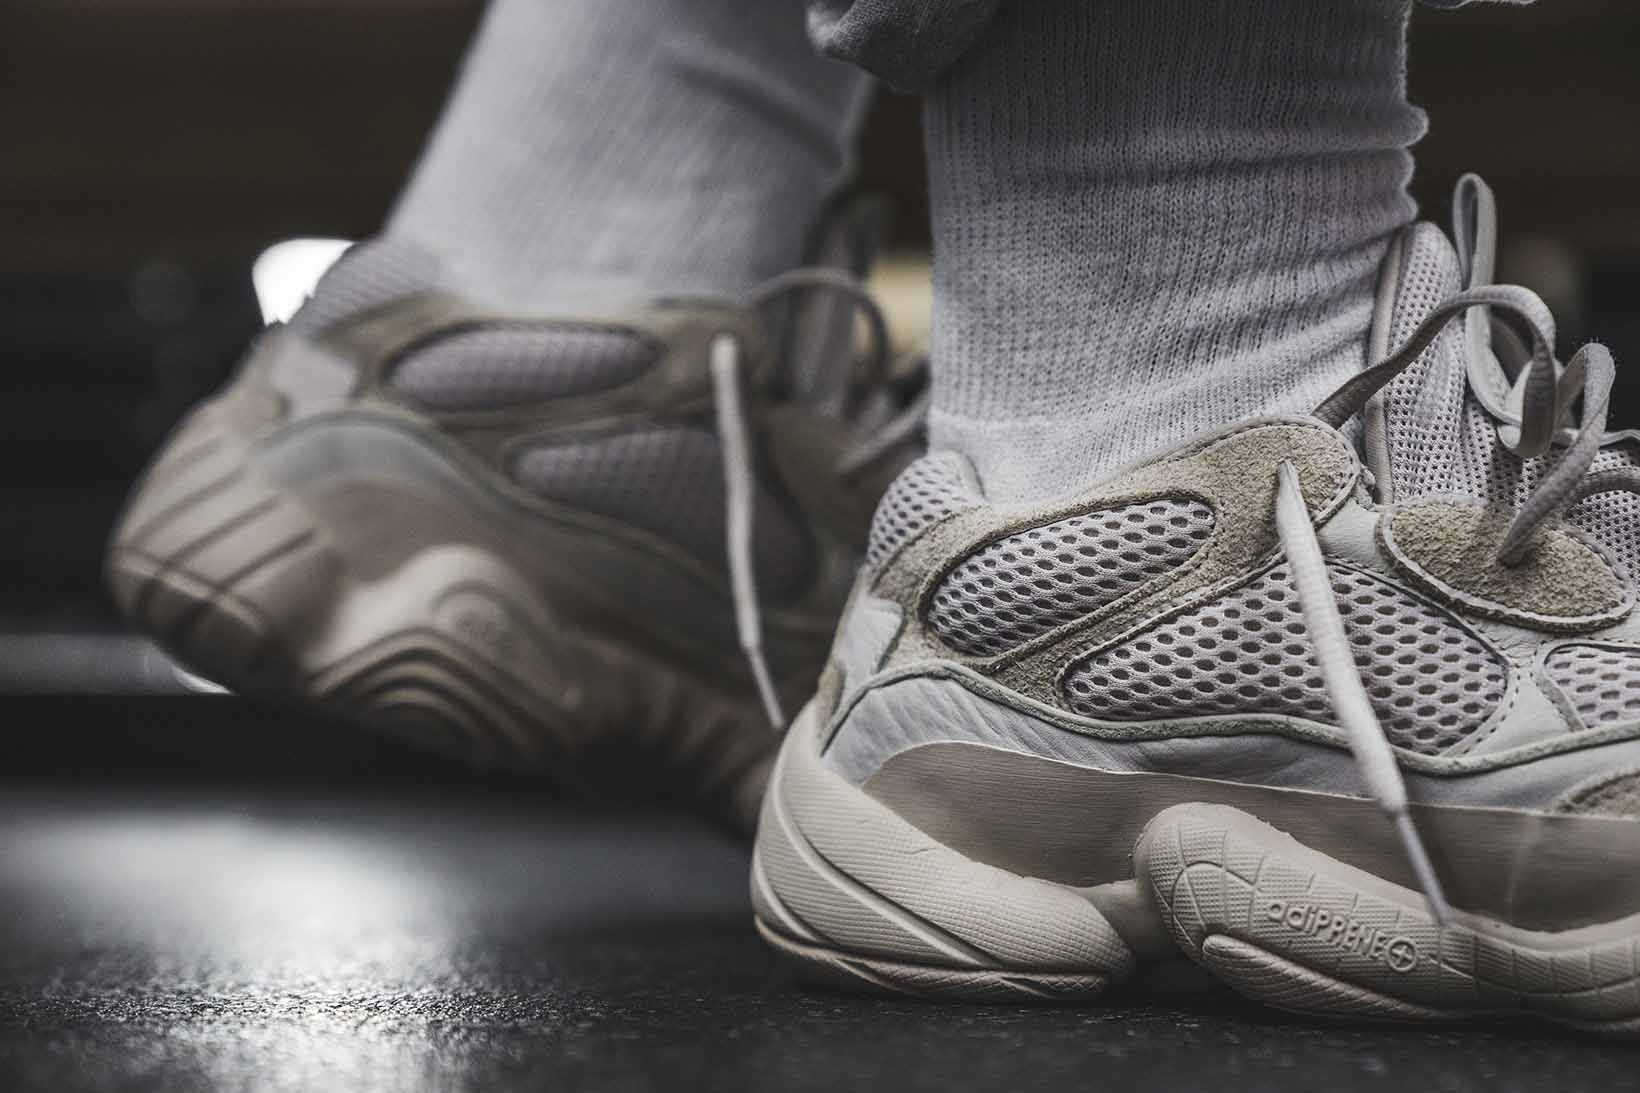 yeezy-desert-rat-500-blush-closer-look-6